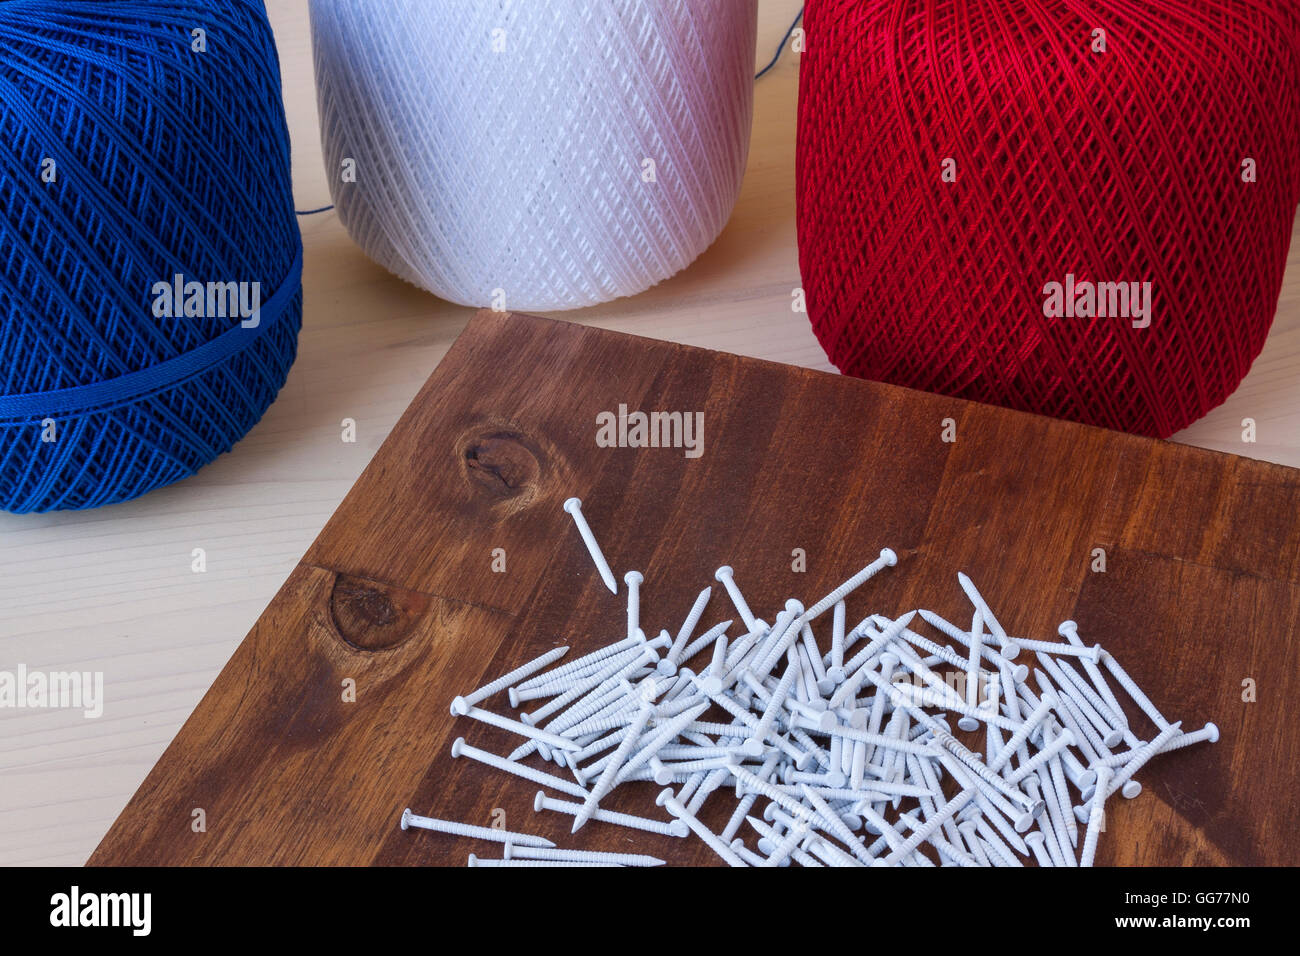 White Craft Nails And Other Accessories For String Art On A Wooden